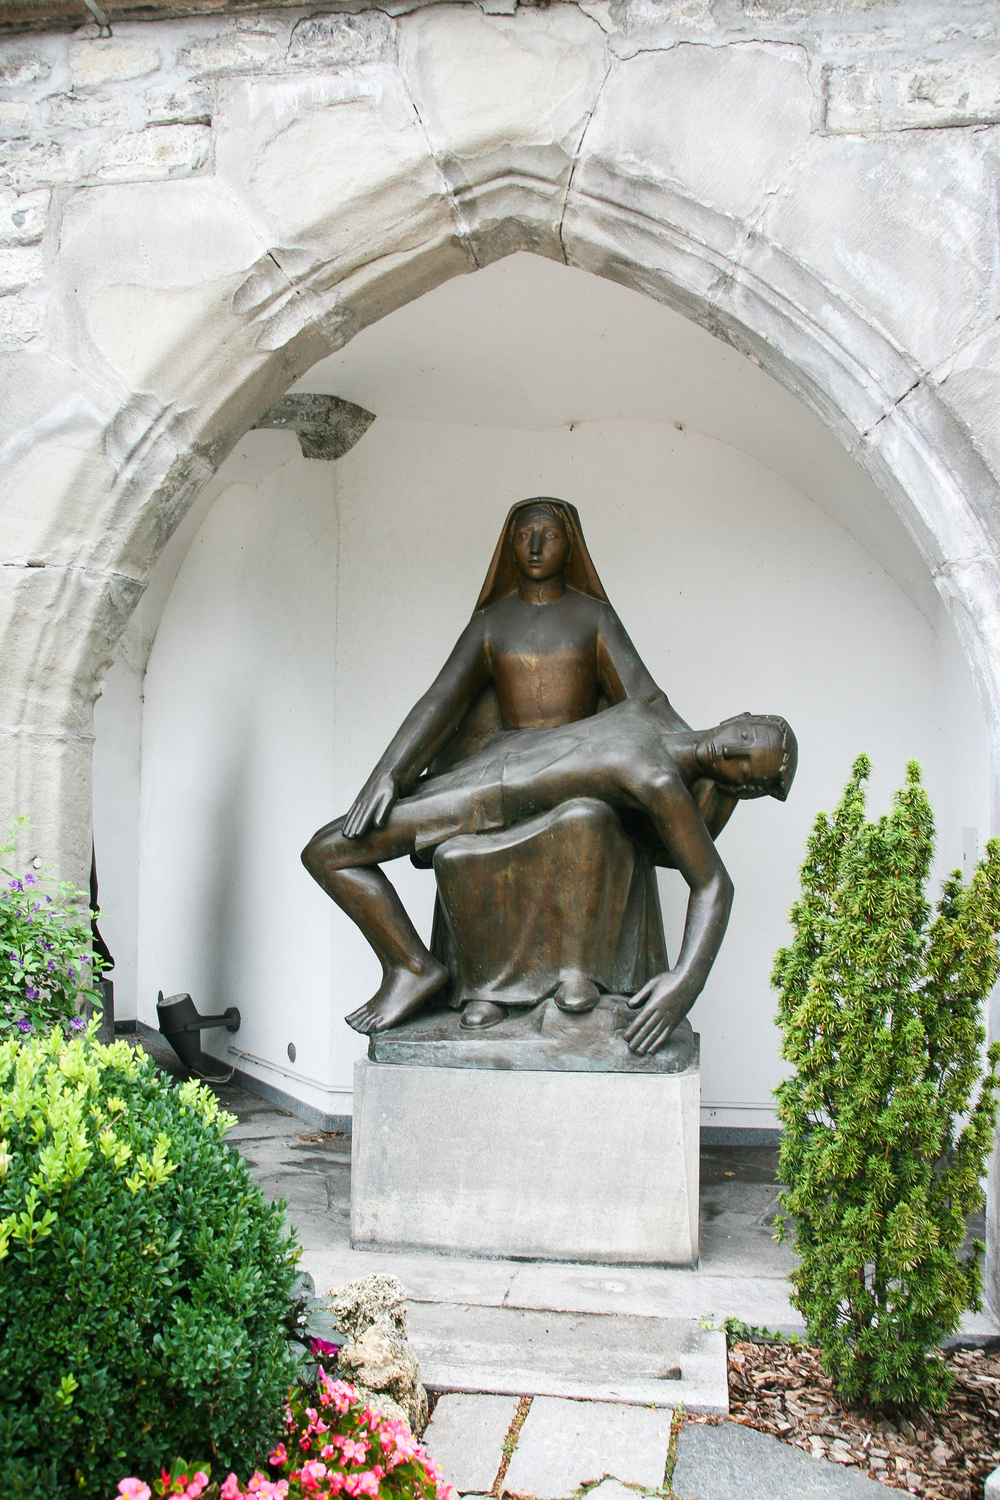 Vaduz.  St. Florin Cathedral, church art in the yard.